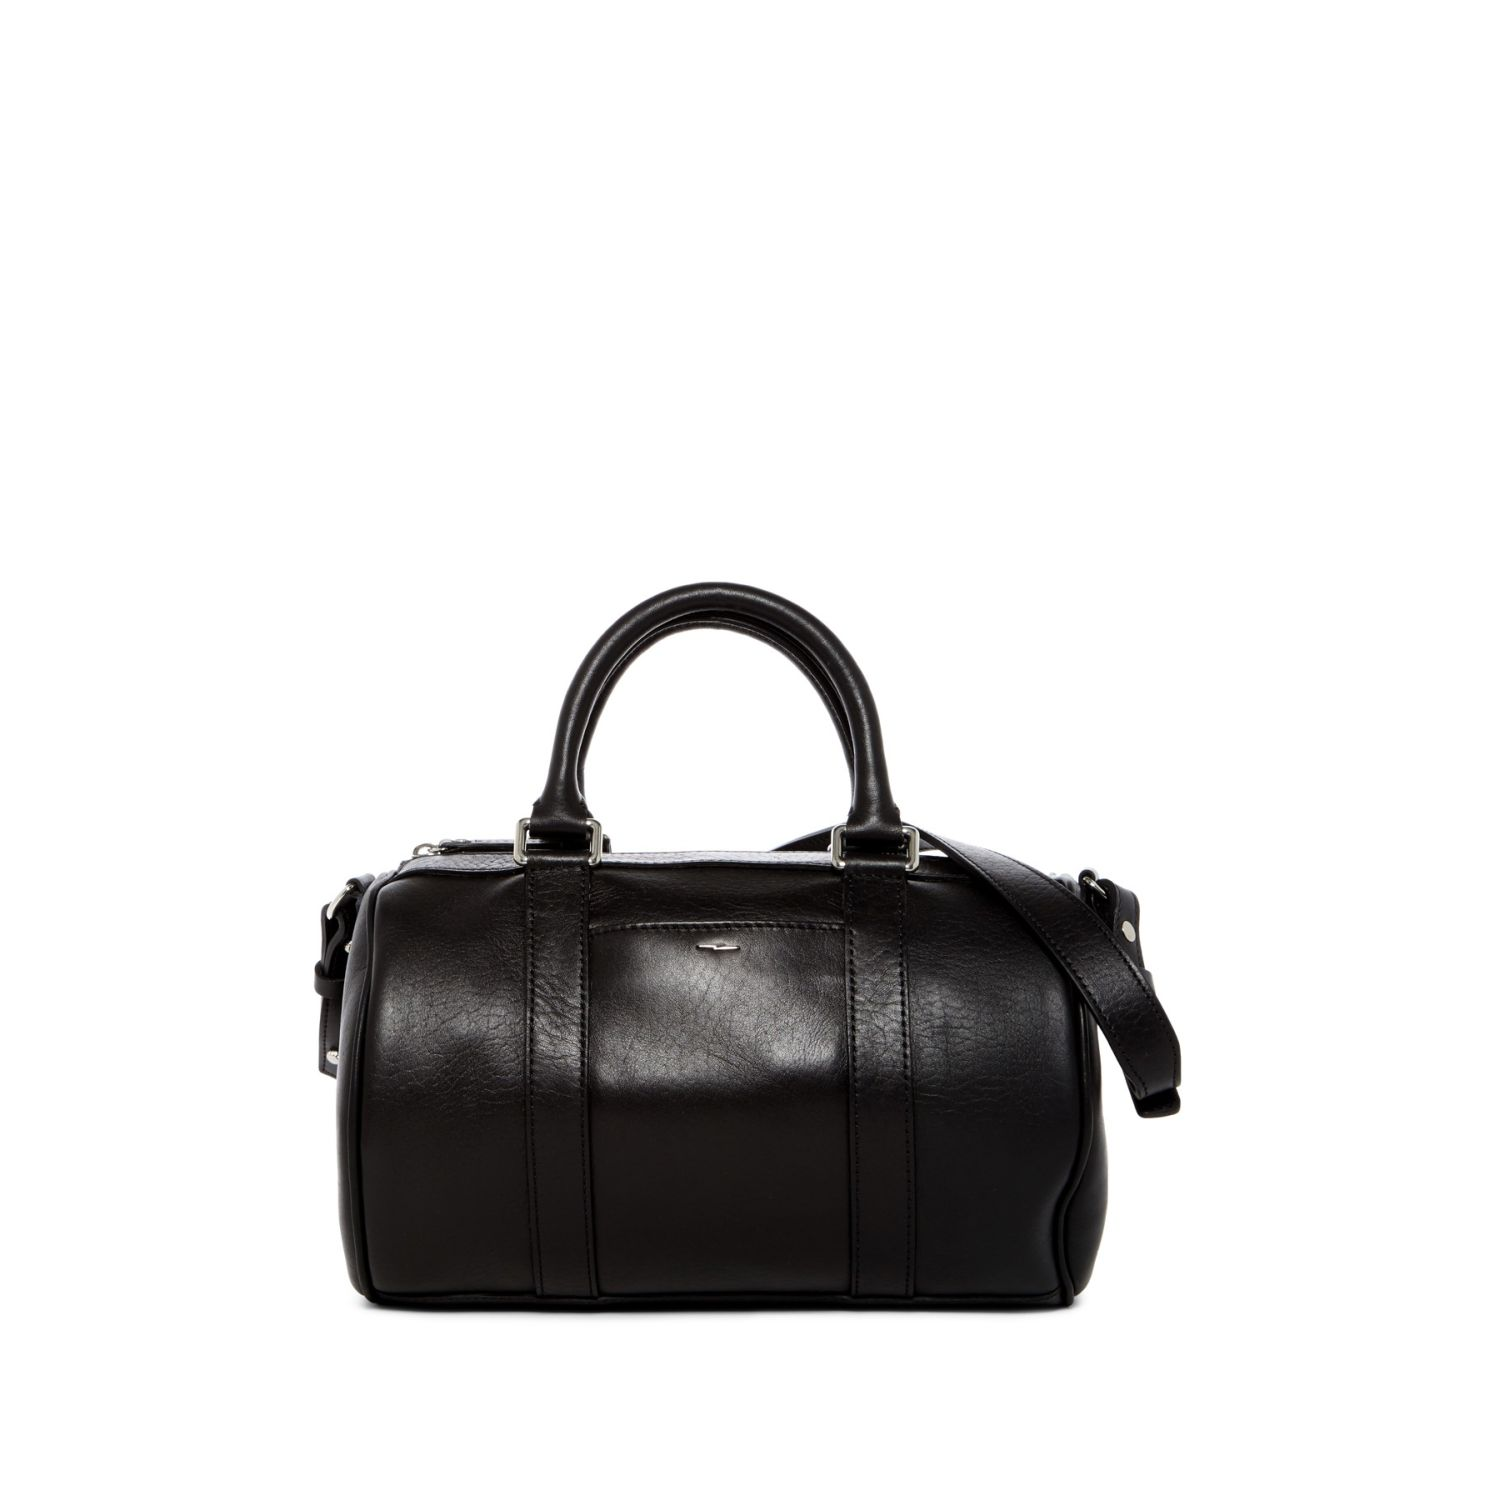 Shinola S0320004527 Black7 Black Small Leather Duffle Bag